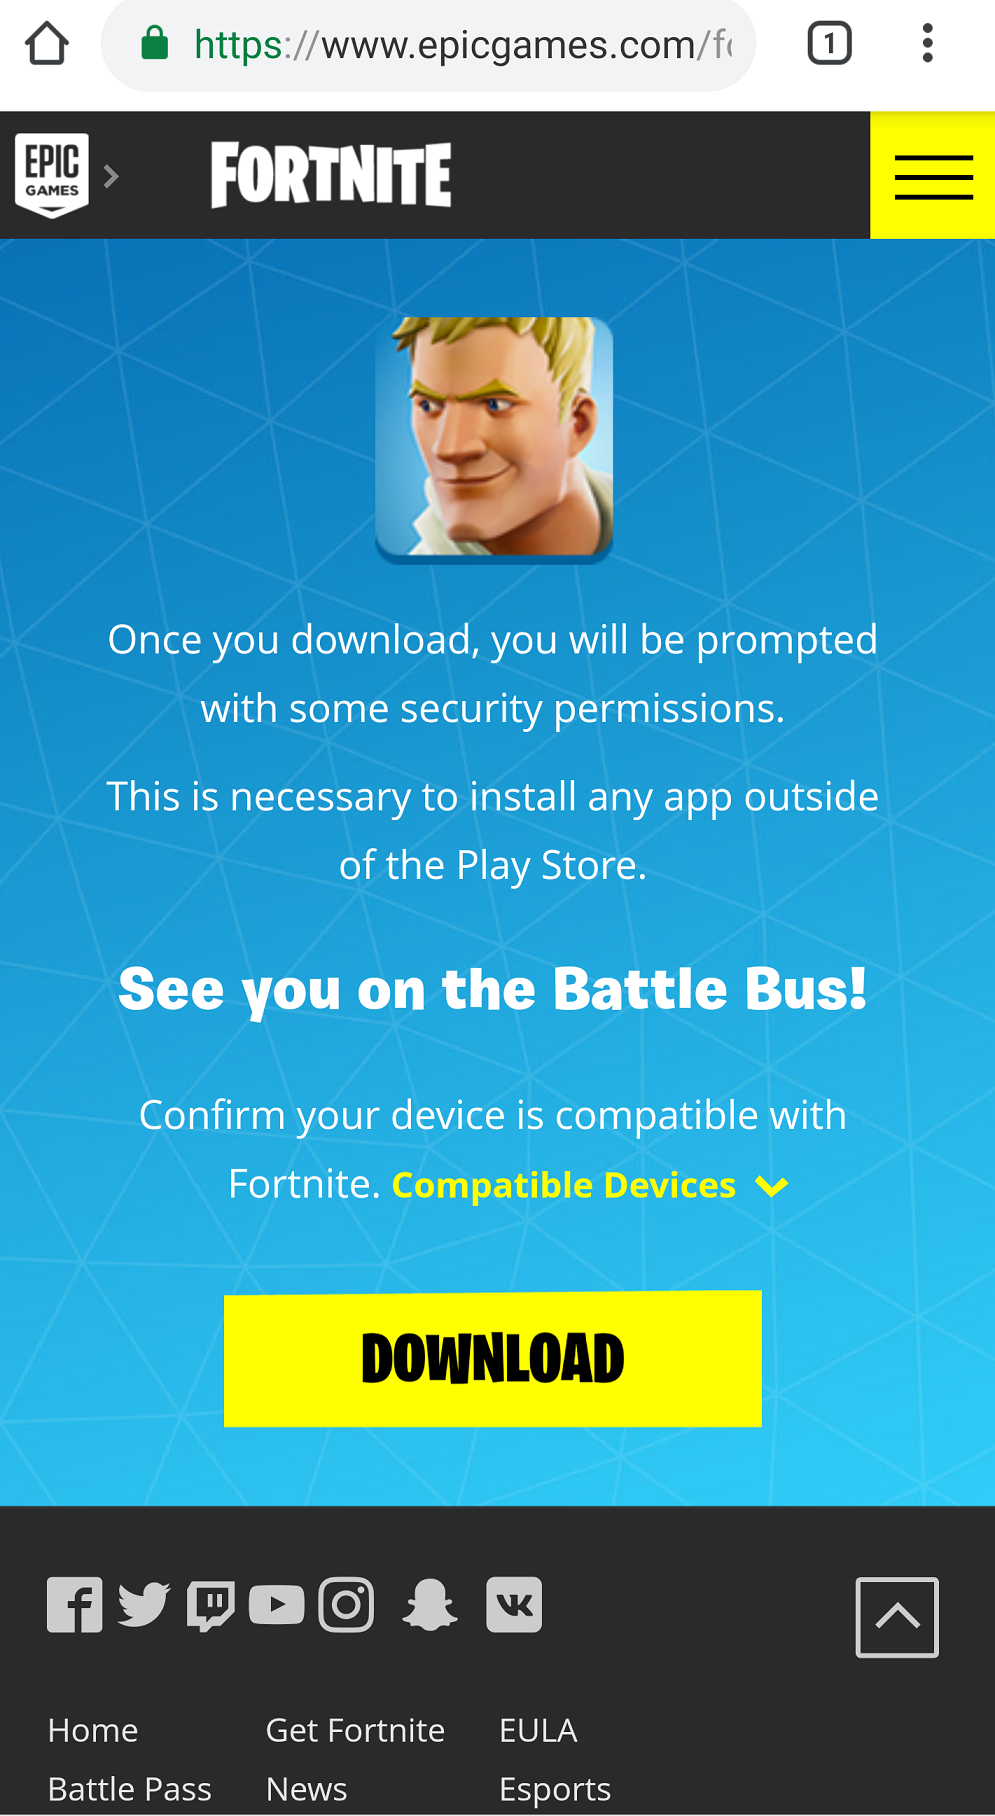 How to install and play Fortnite on Android device